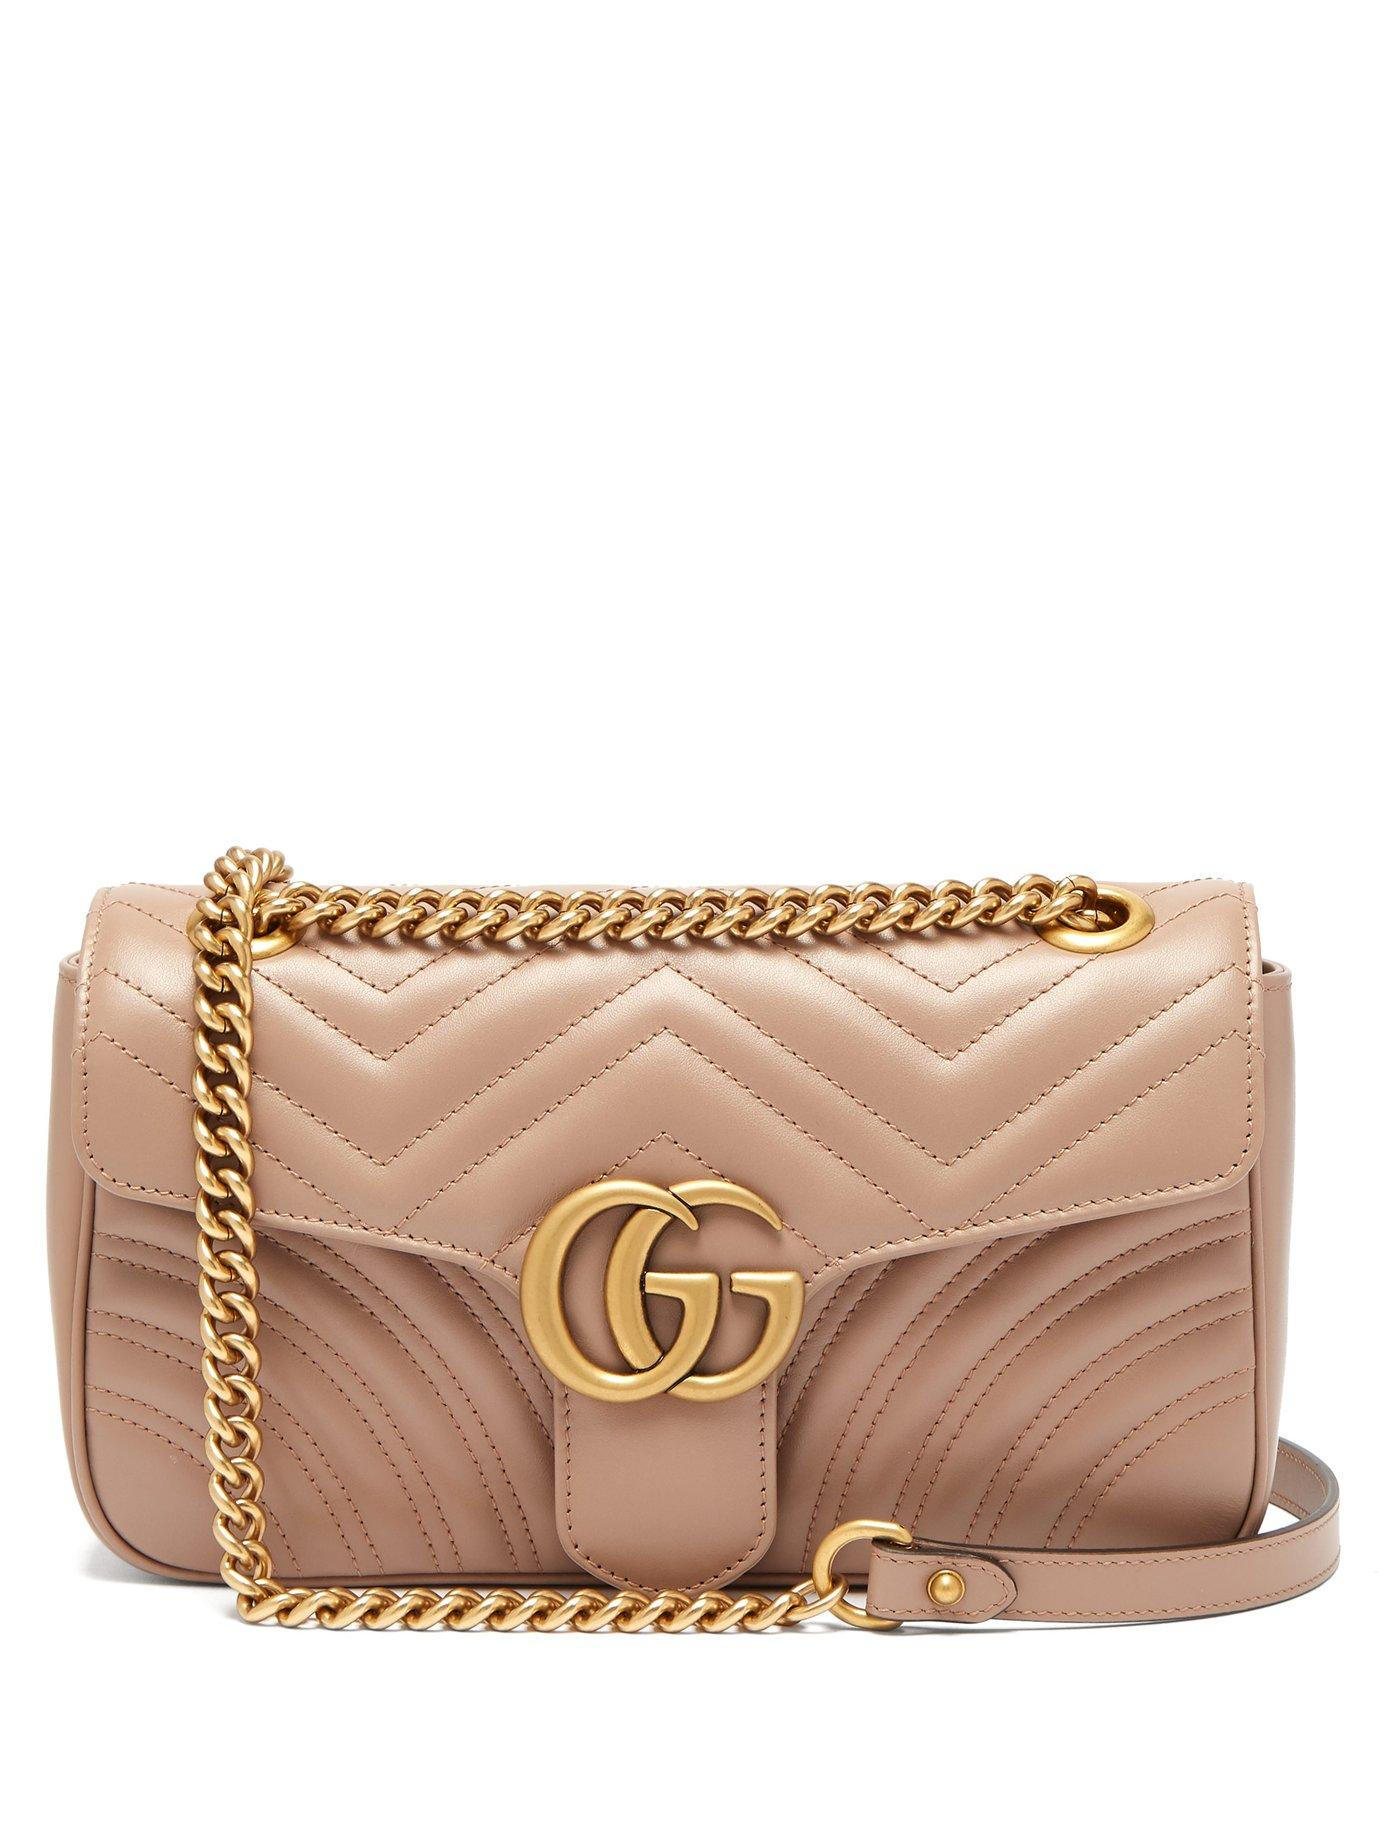 e176833bcb94 Gucci. Women's Gg Marmont Small Quilted Leather Shoulder Bag